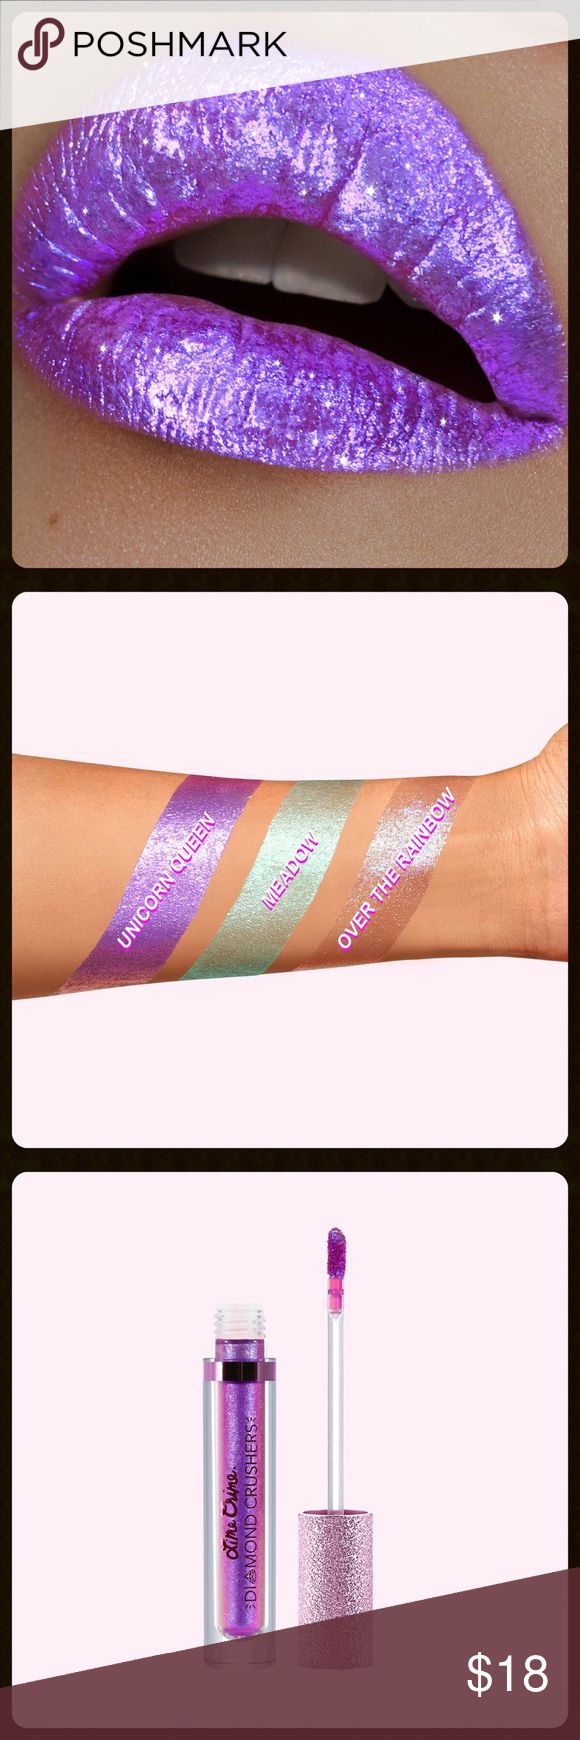 Lime Crime Diamond Crushers in Unicorn Queen BRAND NEW• OFFERS WELCOME • 100% AUTHENTIC •  Lime Crime Diamond Crushers Lip Topper in Unicorn Queen.  Iridescent Lip Topper that gets you LIT. Wanna sparkle like a fairy on acid? Get the effect of *crushed diamonds* on your lips, cheeks, and anywhere else on your body with a swipe of a wand! Can be worn by itself or over matte lipstick without making it run. And it smells like strawberries!  ✨Bundle for deAl✨ Lime Crime Makeup Lipstick